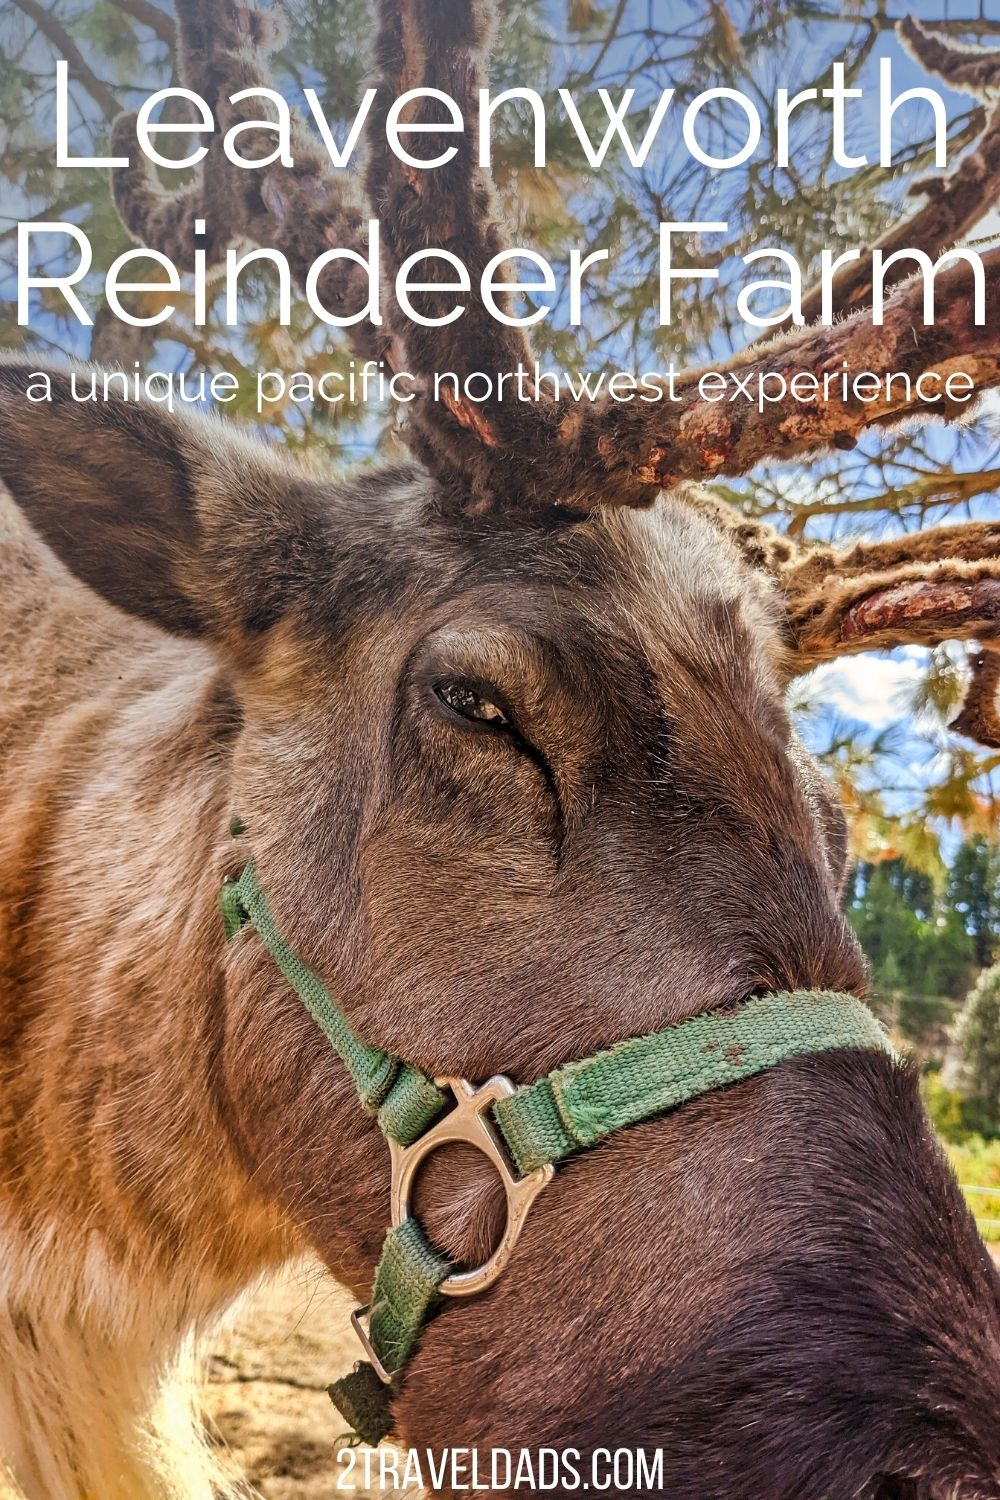 The Leavenworth Reindeer Farm is one of the best things to do when visiting Washington's Bavarian village. See what to expect and things to do and then plan a visit to this unique Pacific Northwest farm.